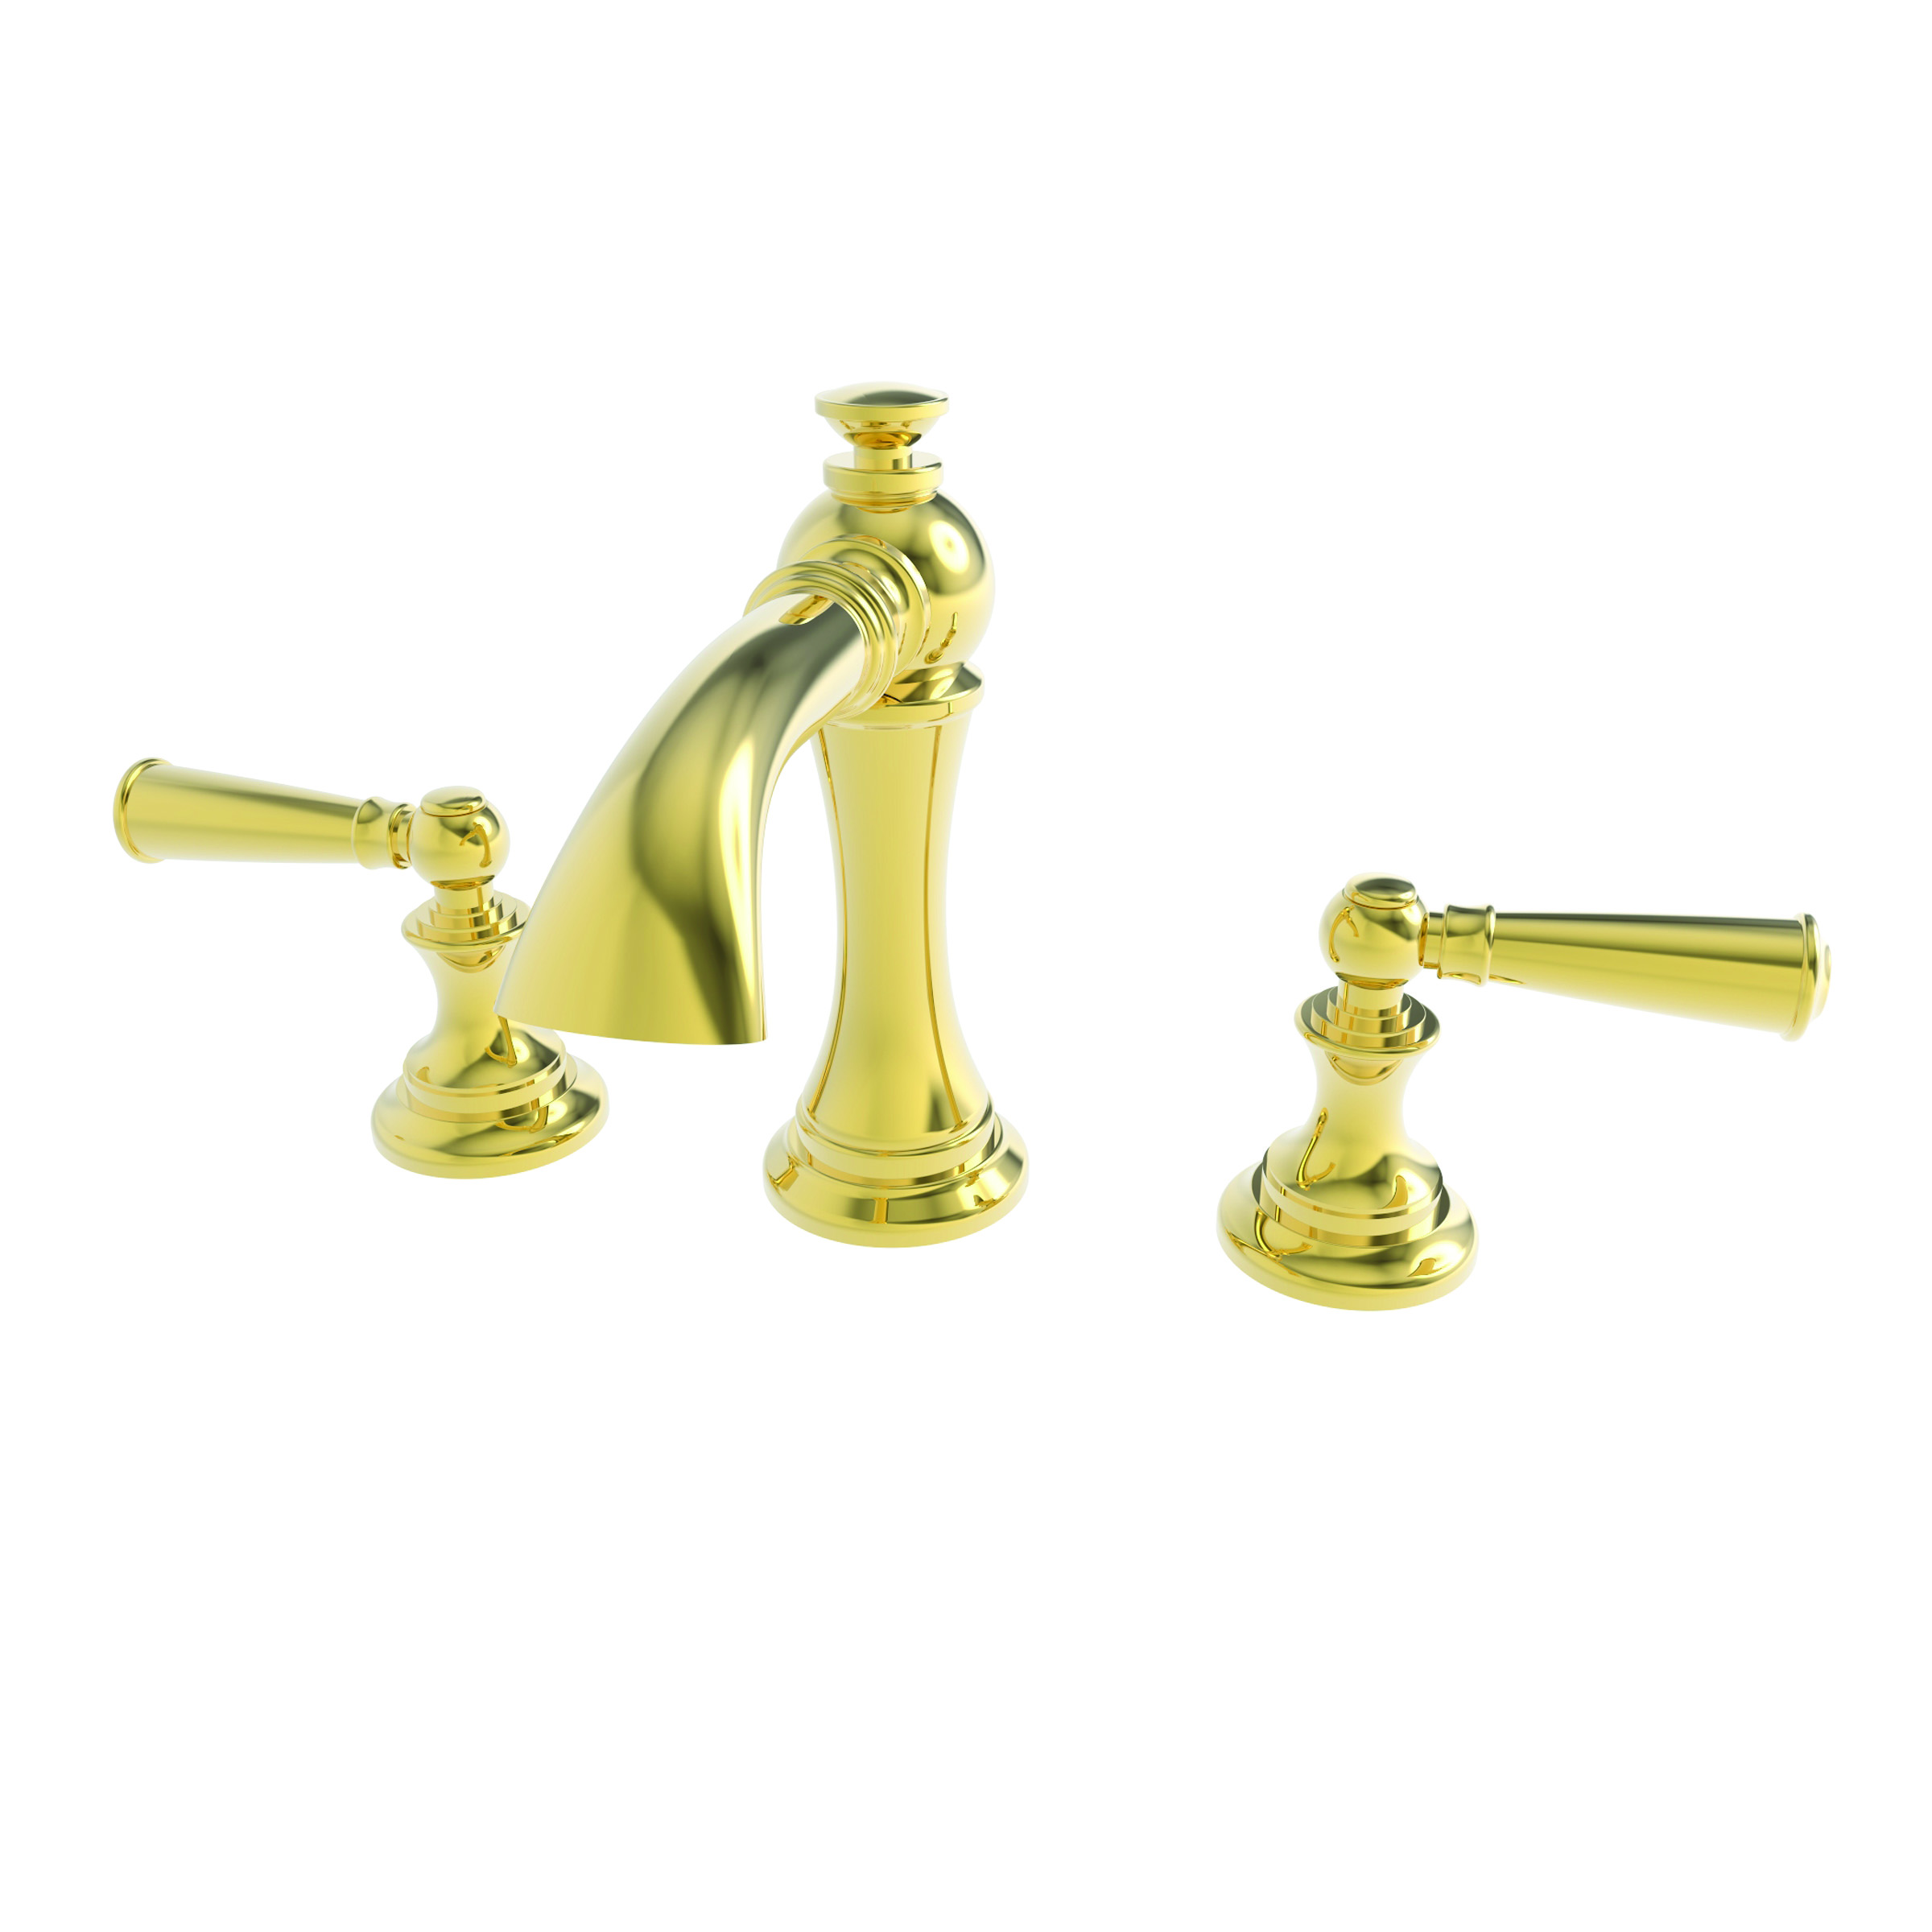 Newport brass 2450 widespread lavatory faucet newport brass faucets Newport brass bathroom faucets